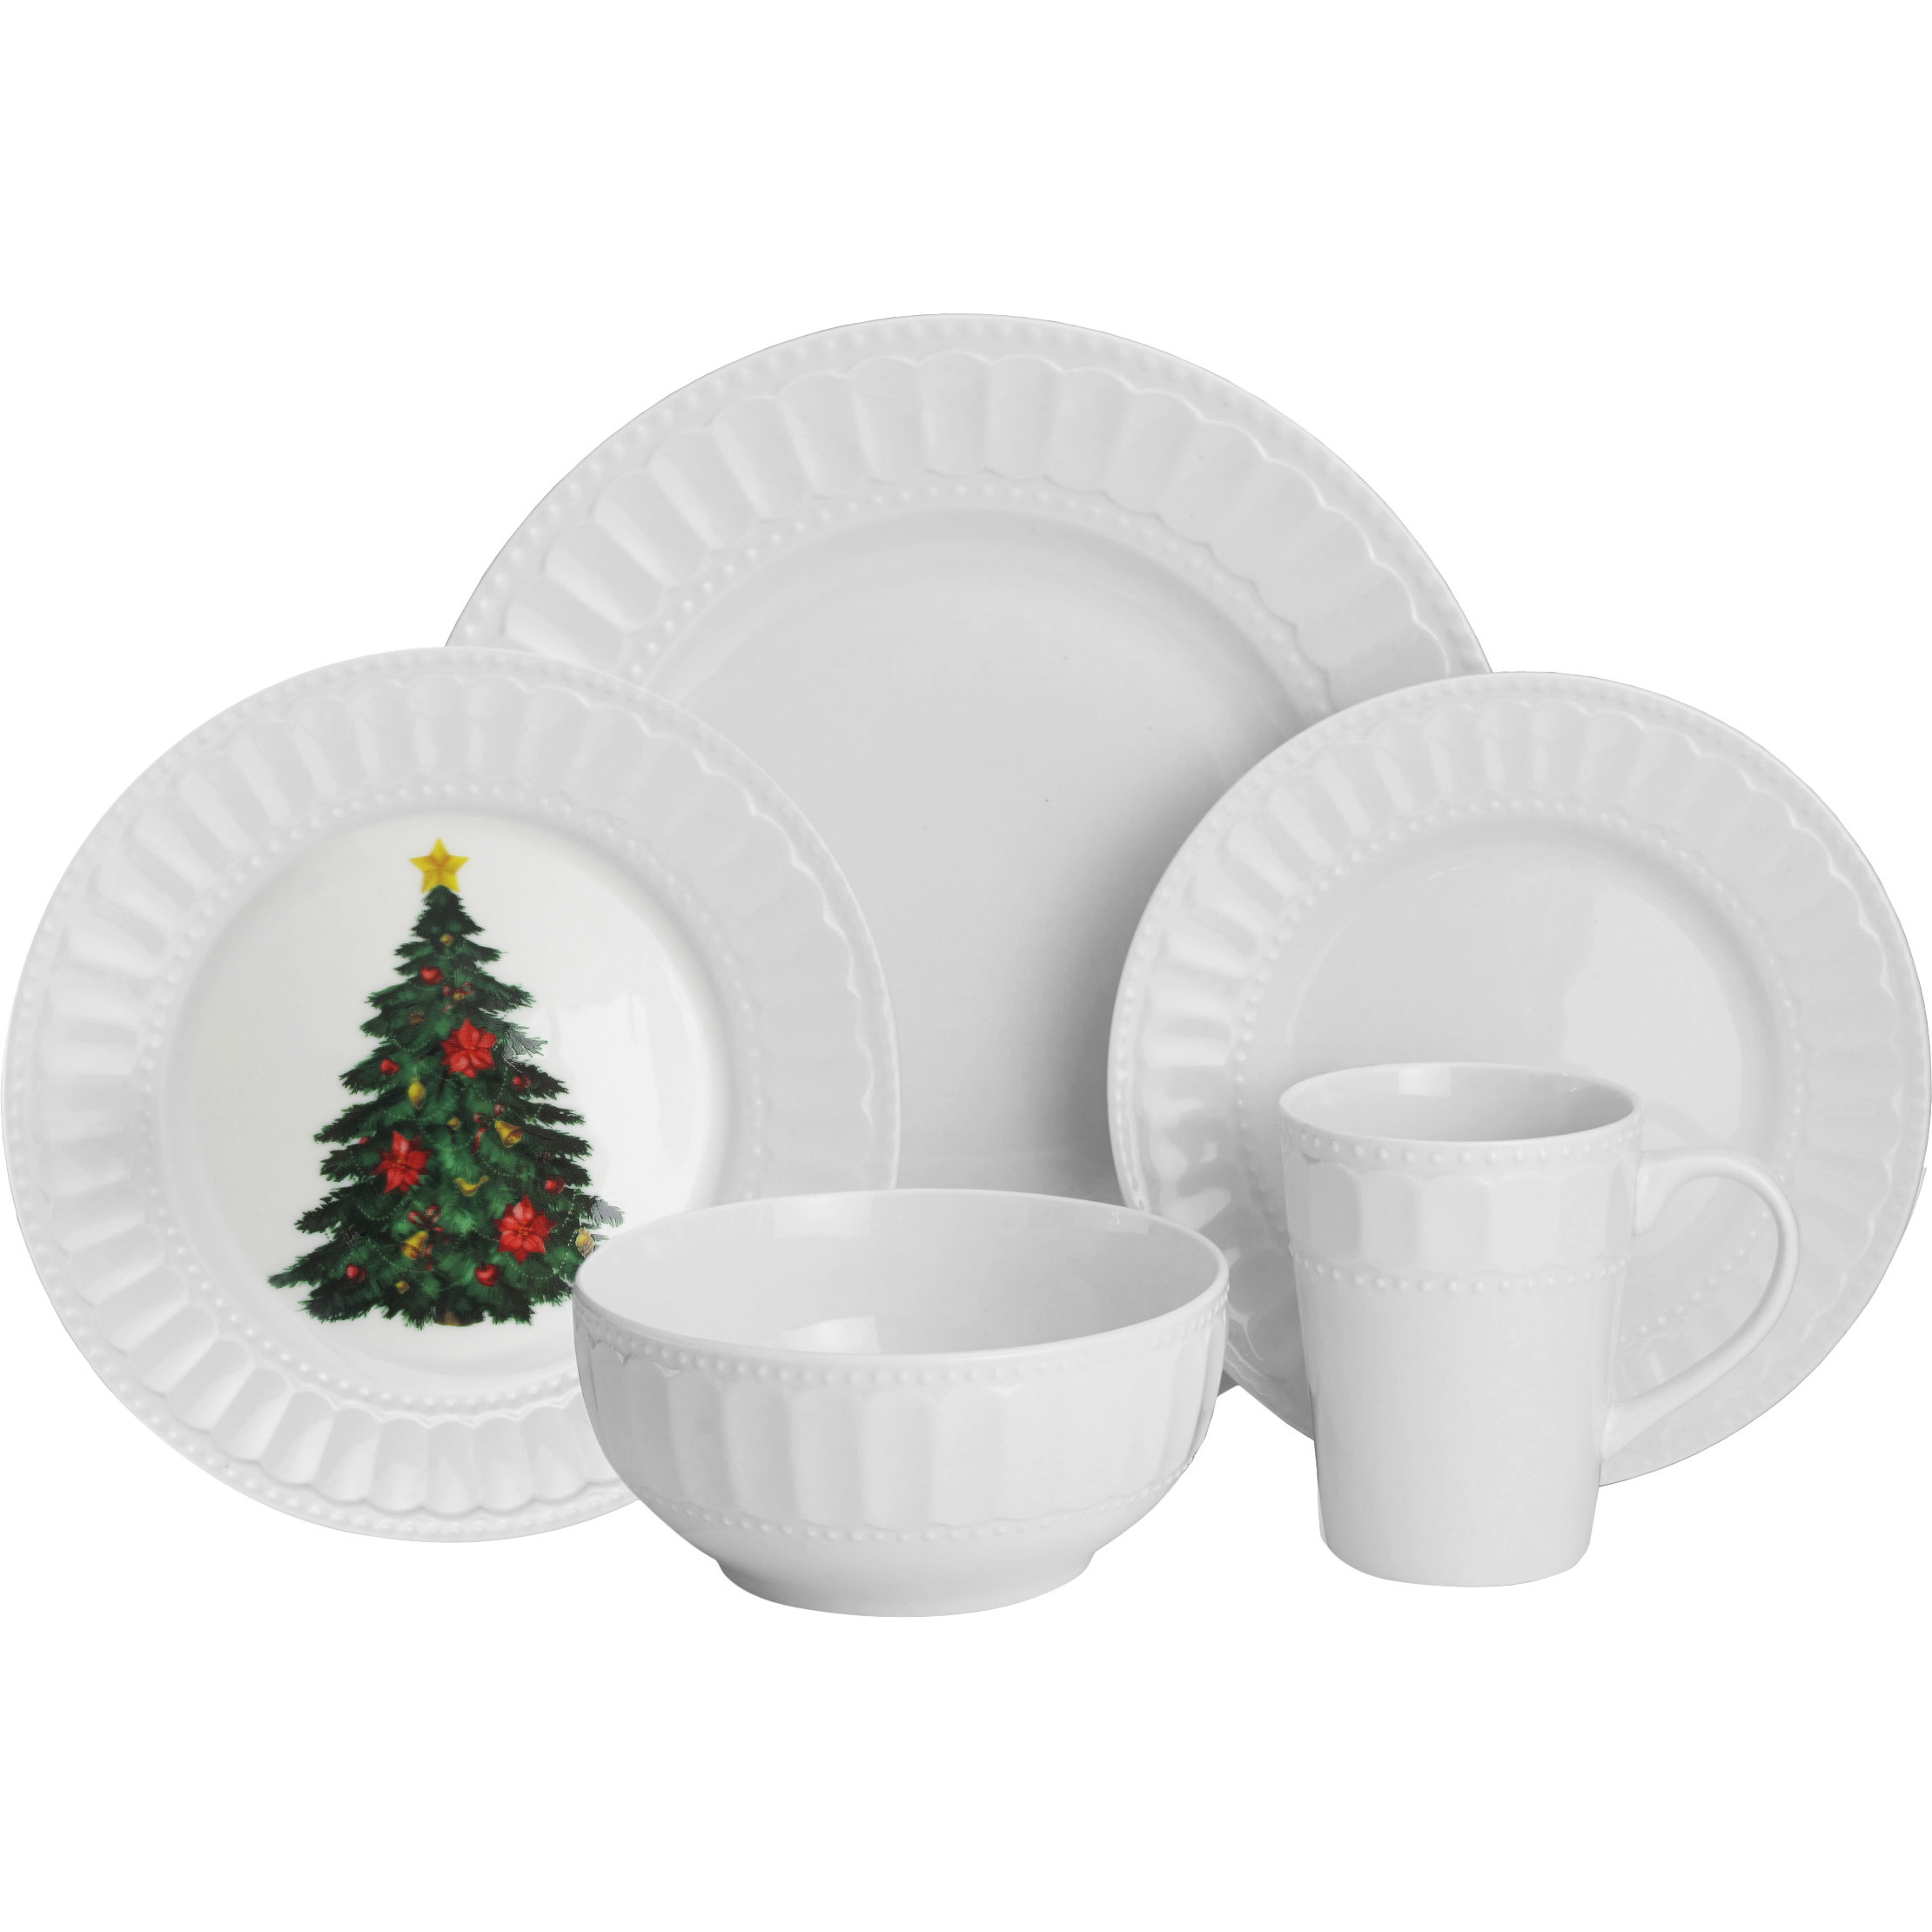 Fascinating christmas dinnerware for christmas decorating ideas with christmas dinnerware sets clearance